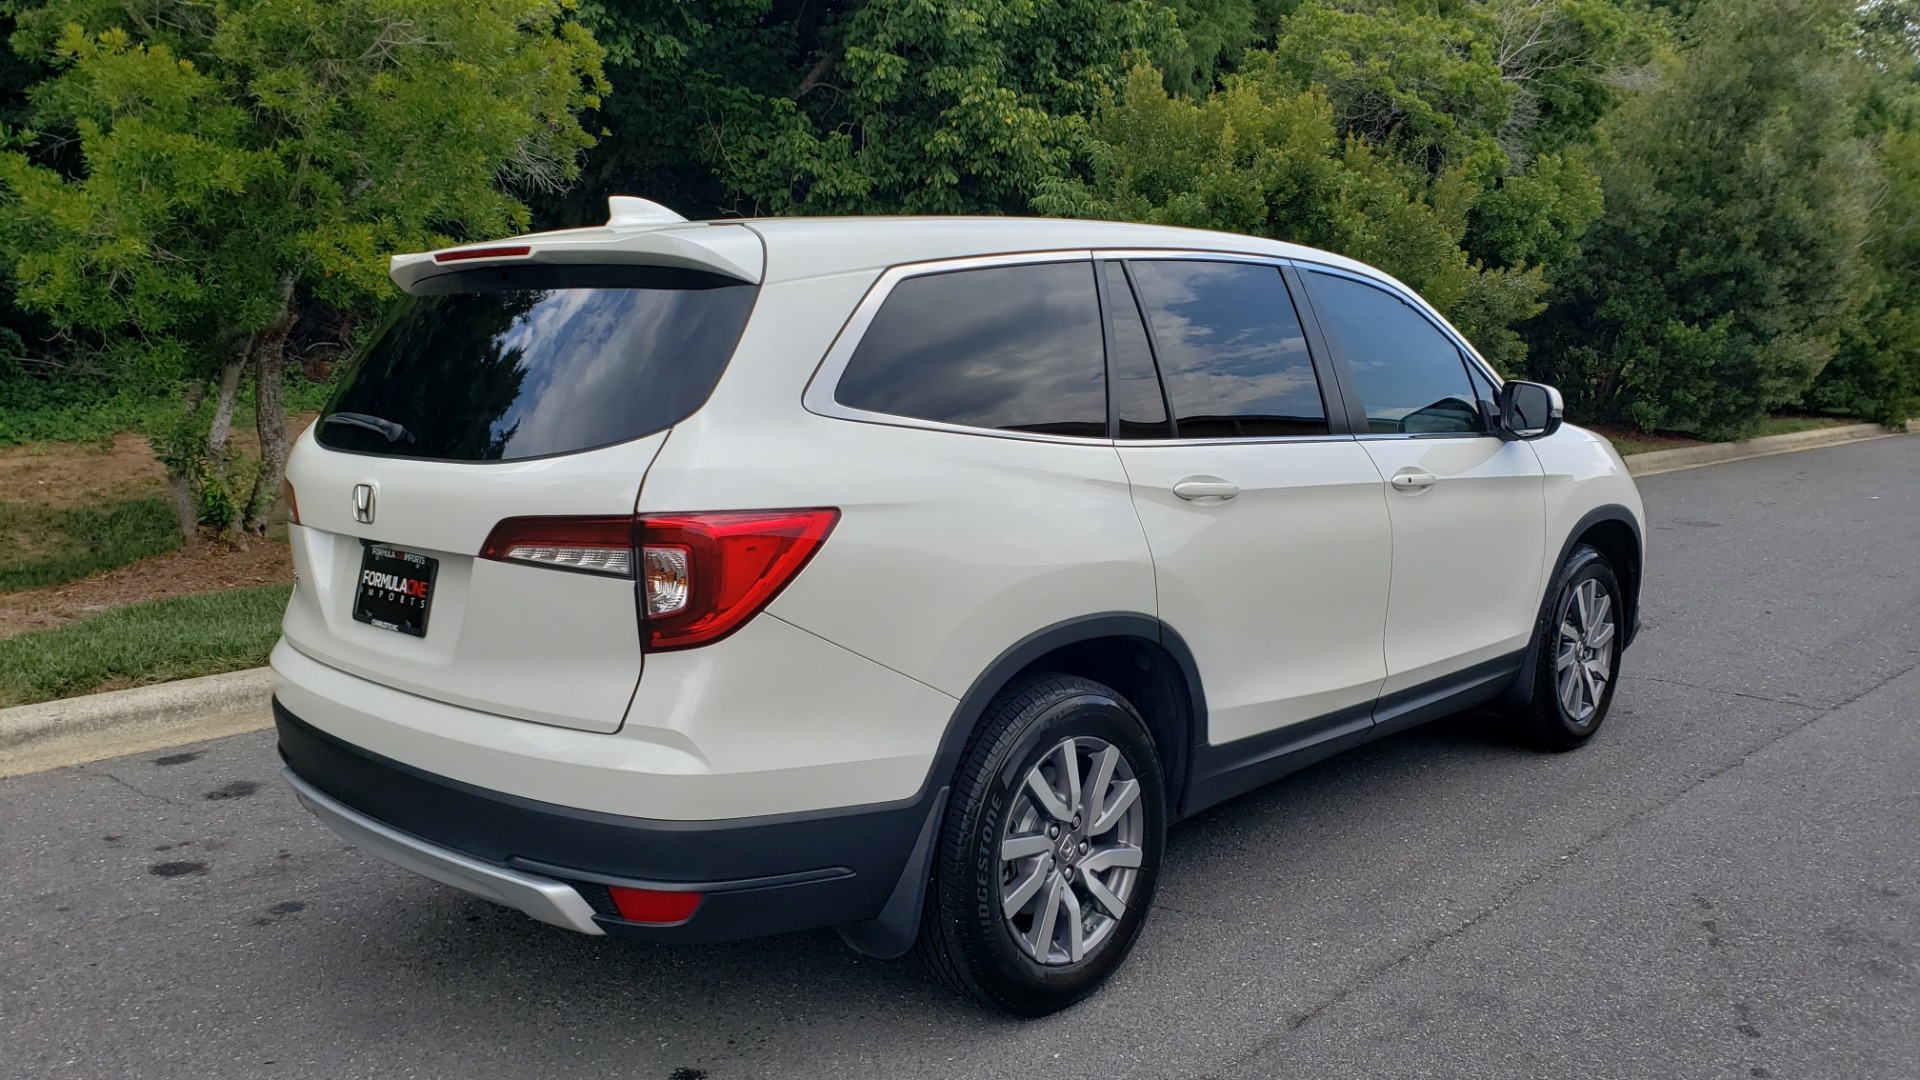 Used 2019 Honda PILOT EX-L / V6 / NAV / SUNROOF / DVD / 3-ROW / REARVIEW for sale Sold at Formula Imports in Charlotte NC 28227 6